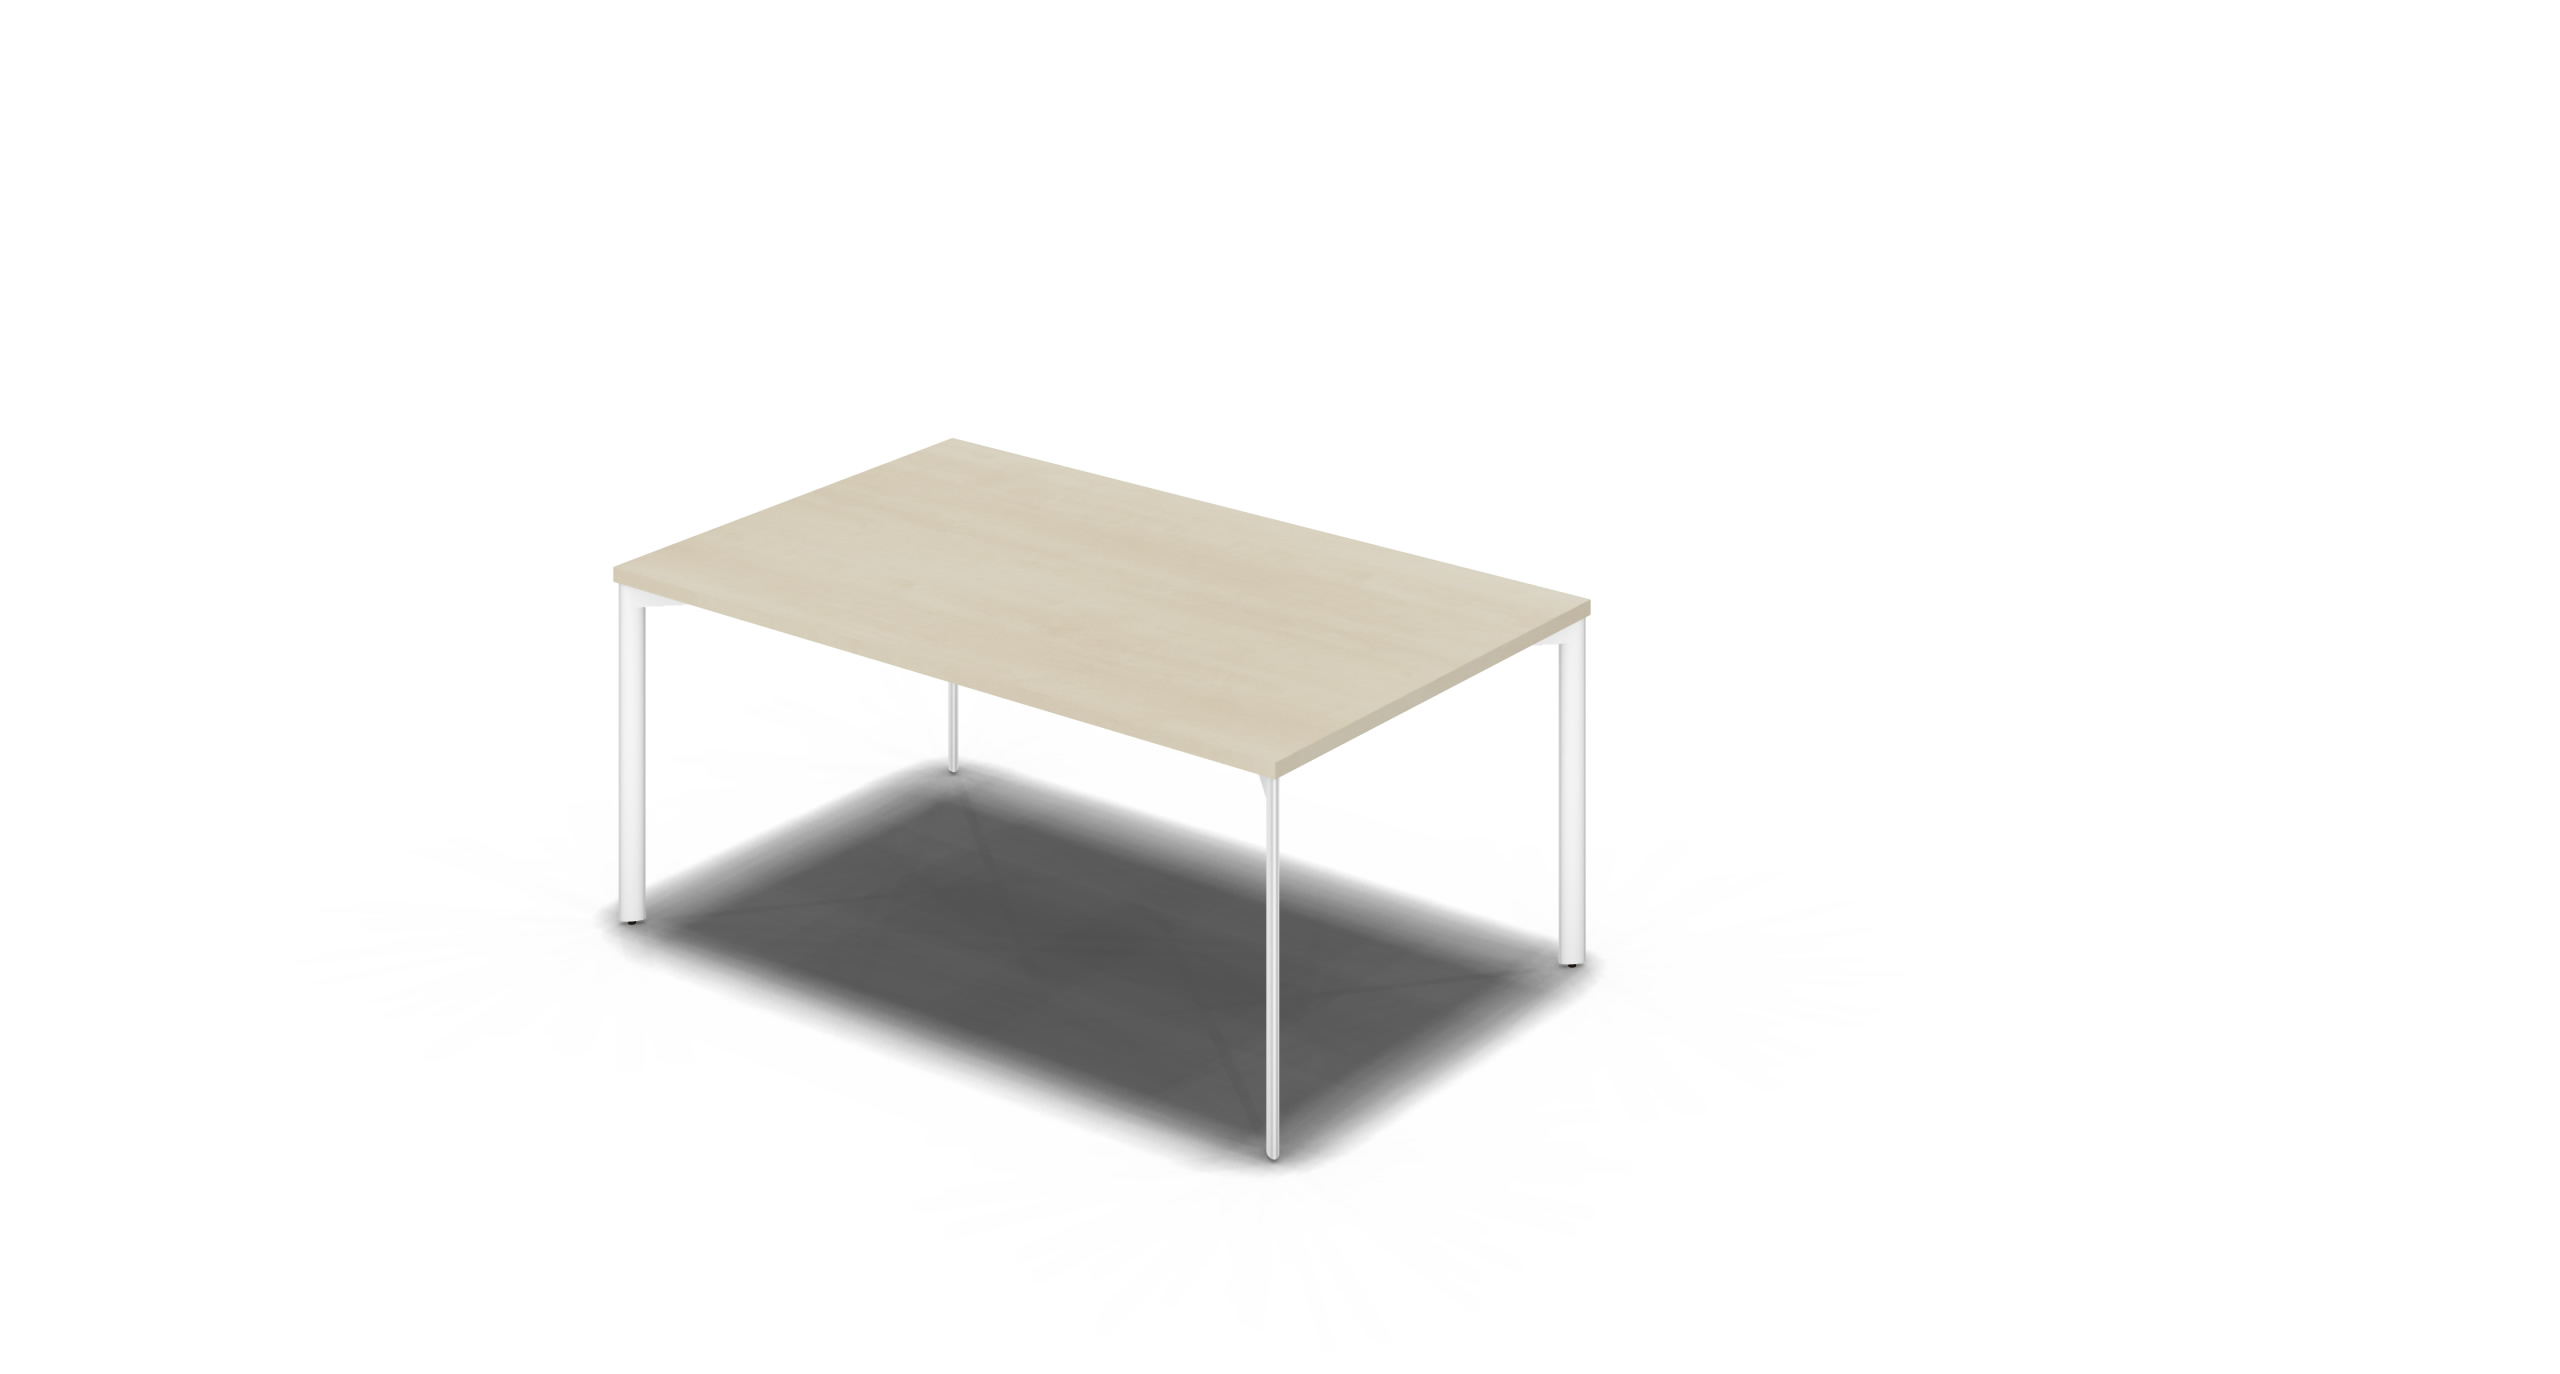 Table_Slim_1500x900_White_Maple_noOption